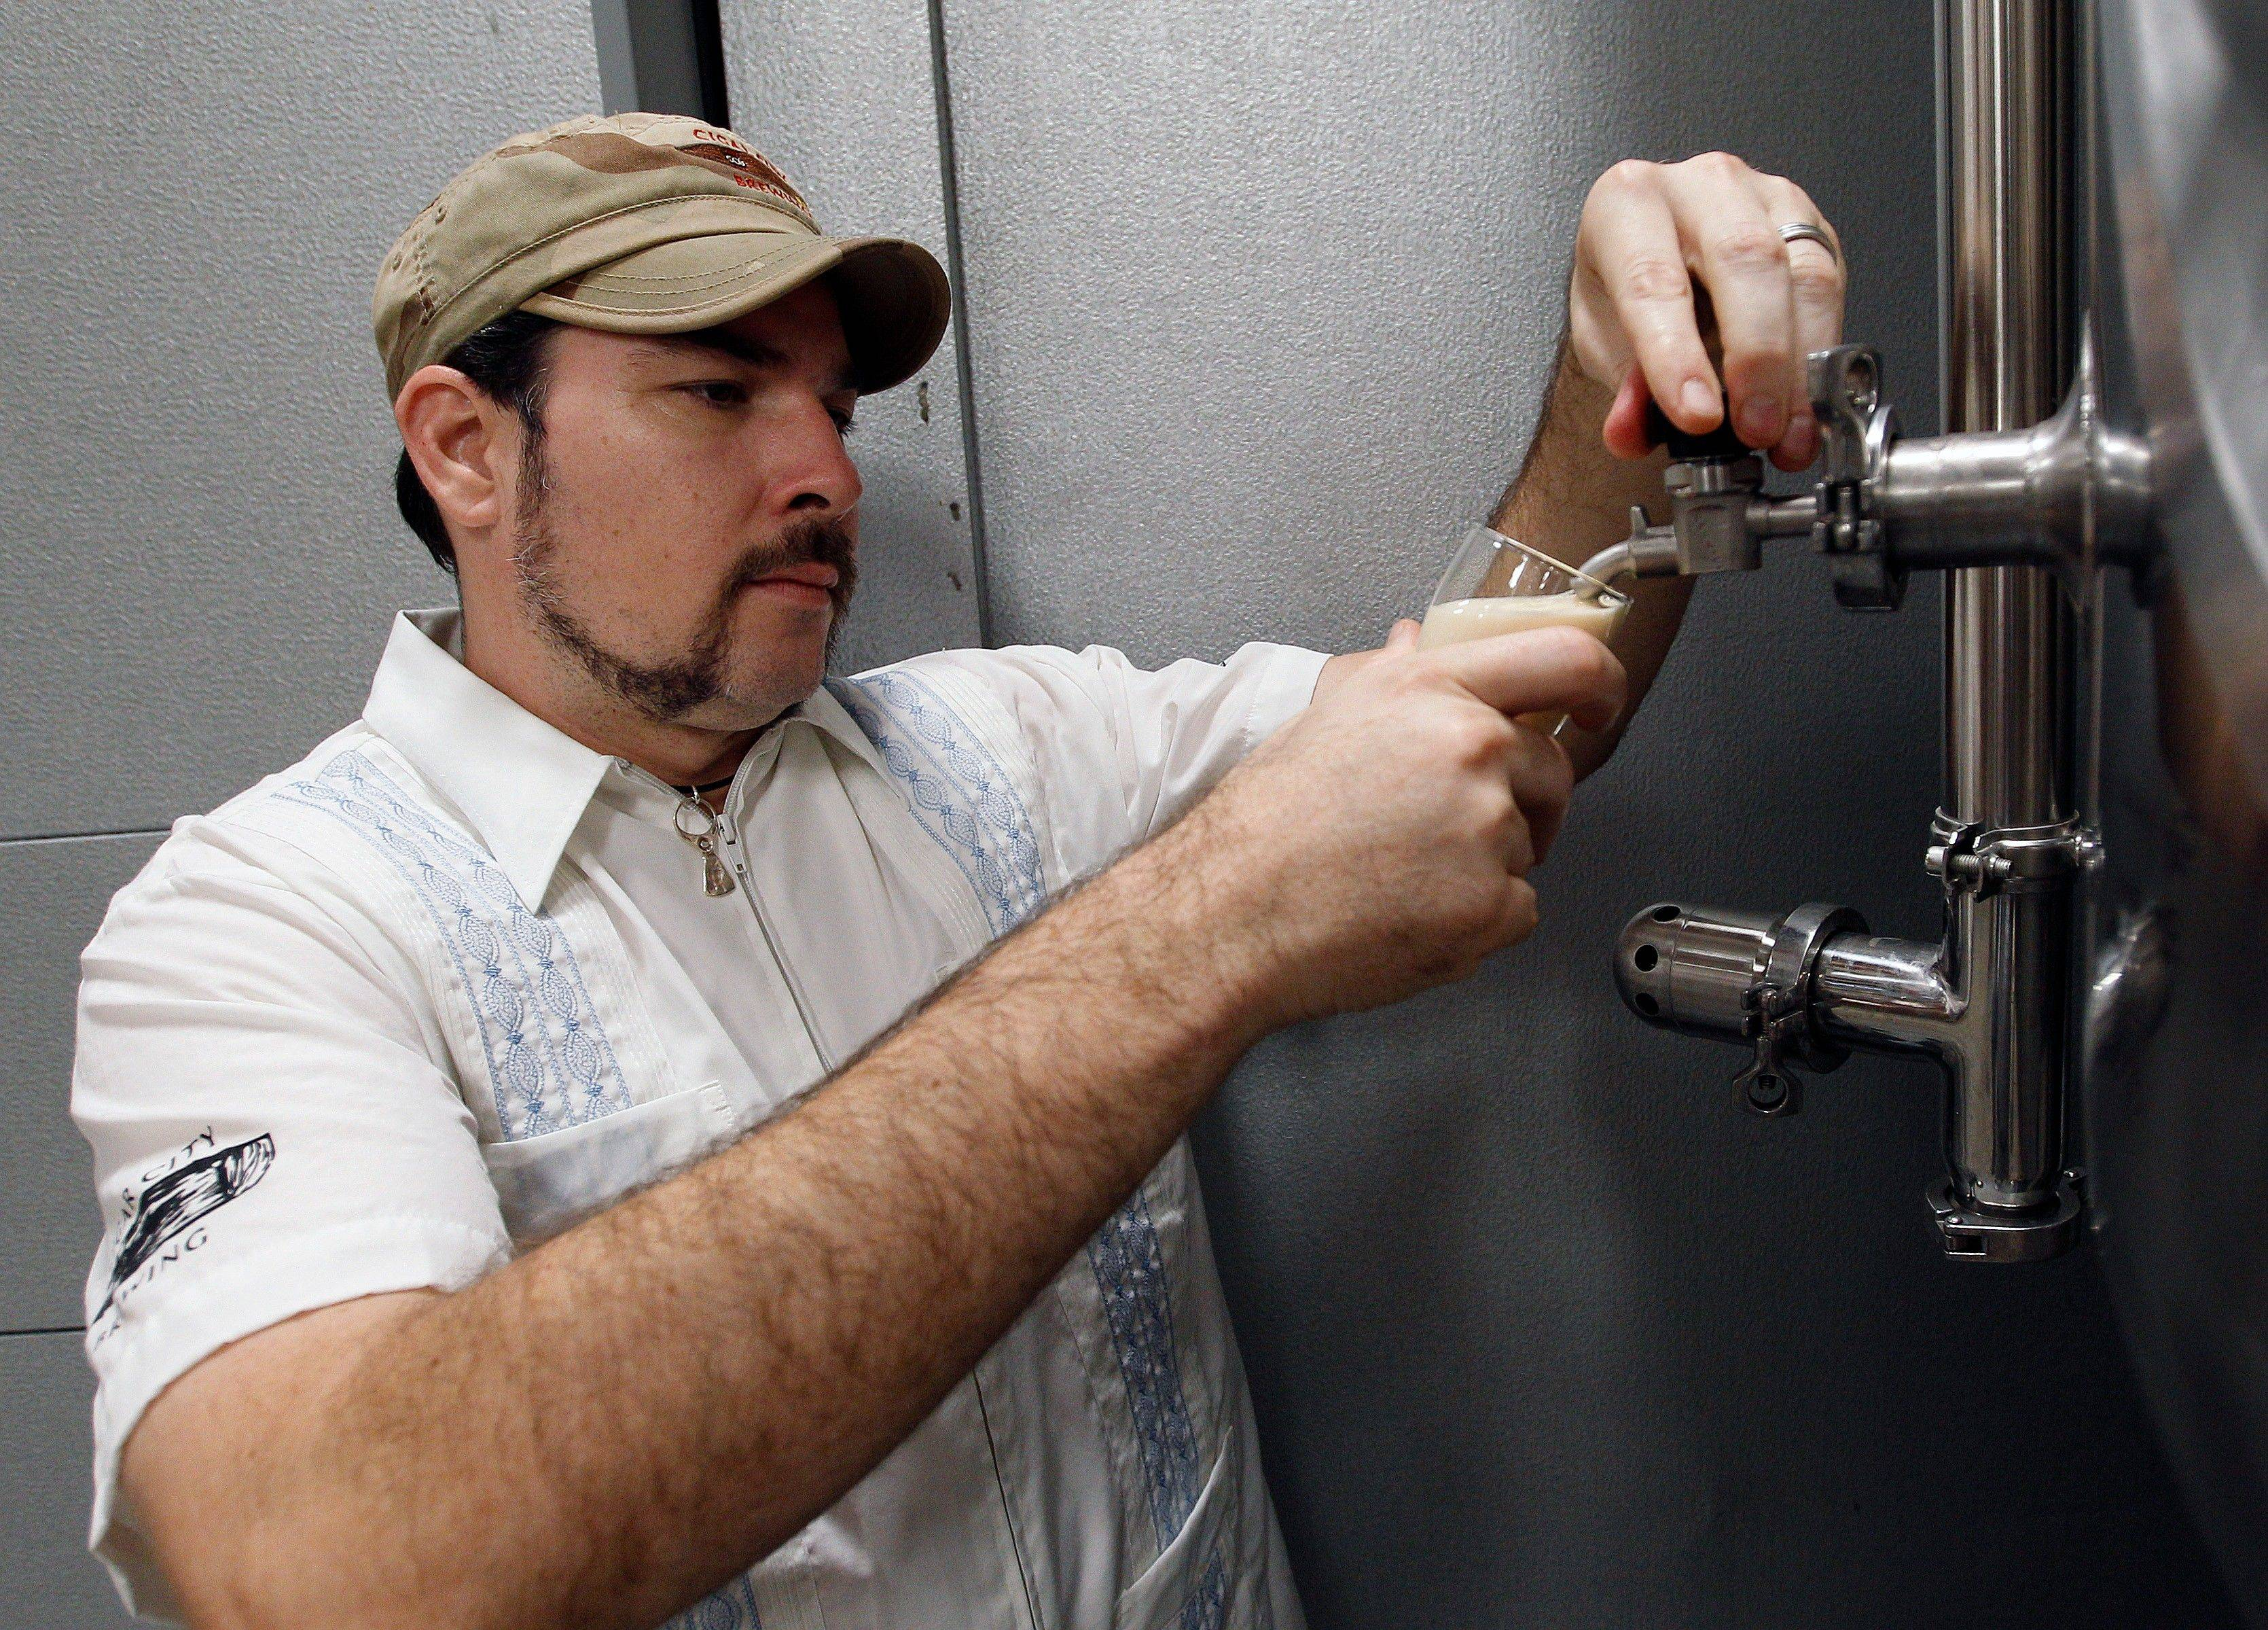 Joey Redner pours a beer sample from the brewing room at Cigar City Brewing Co. in Tampa, Fla. Cigar City uses ingredients such as Spanish cedar, guava, Cuban espresso and citrus woods to craft beers that taste of Tampa's heritage.